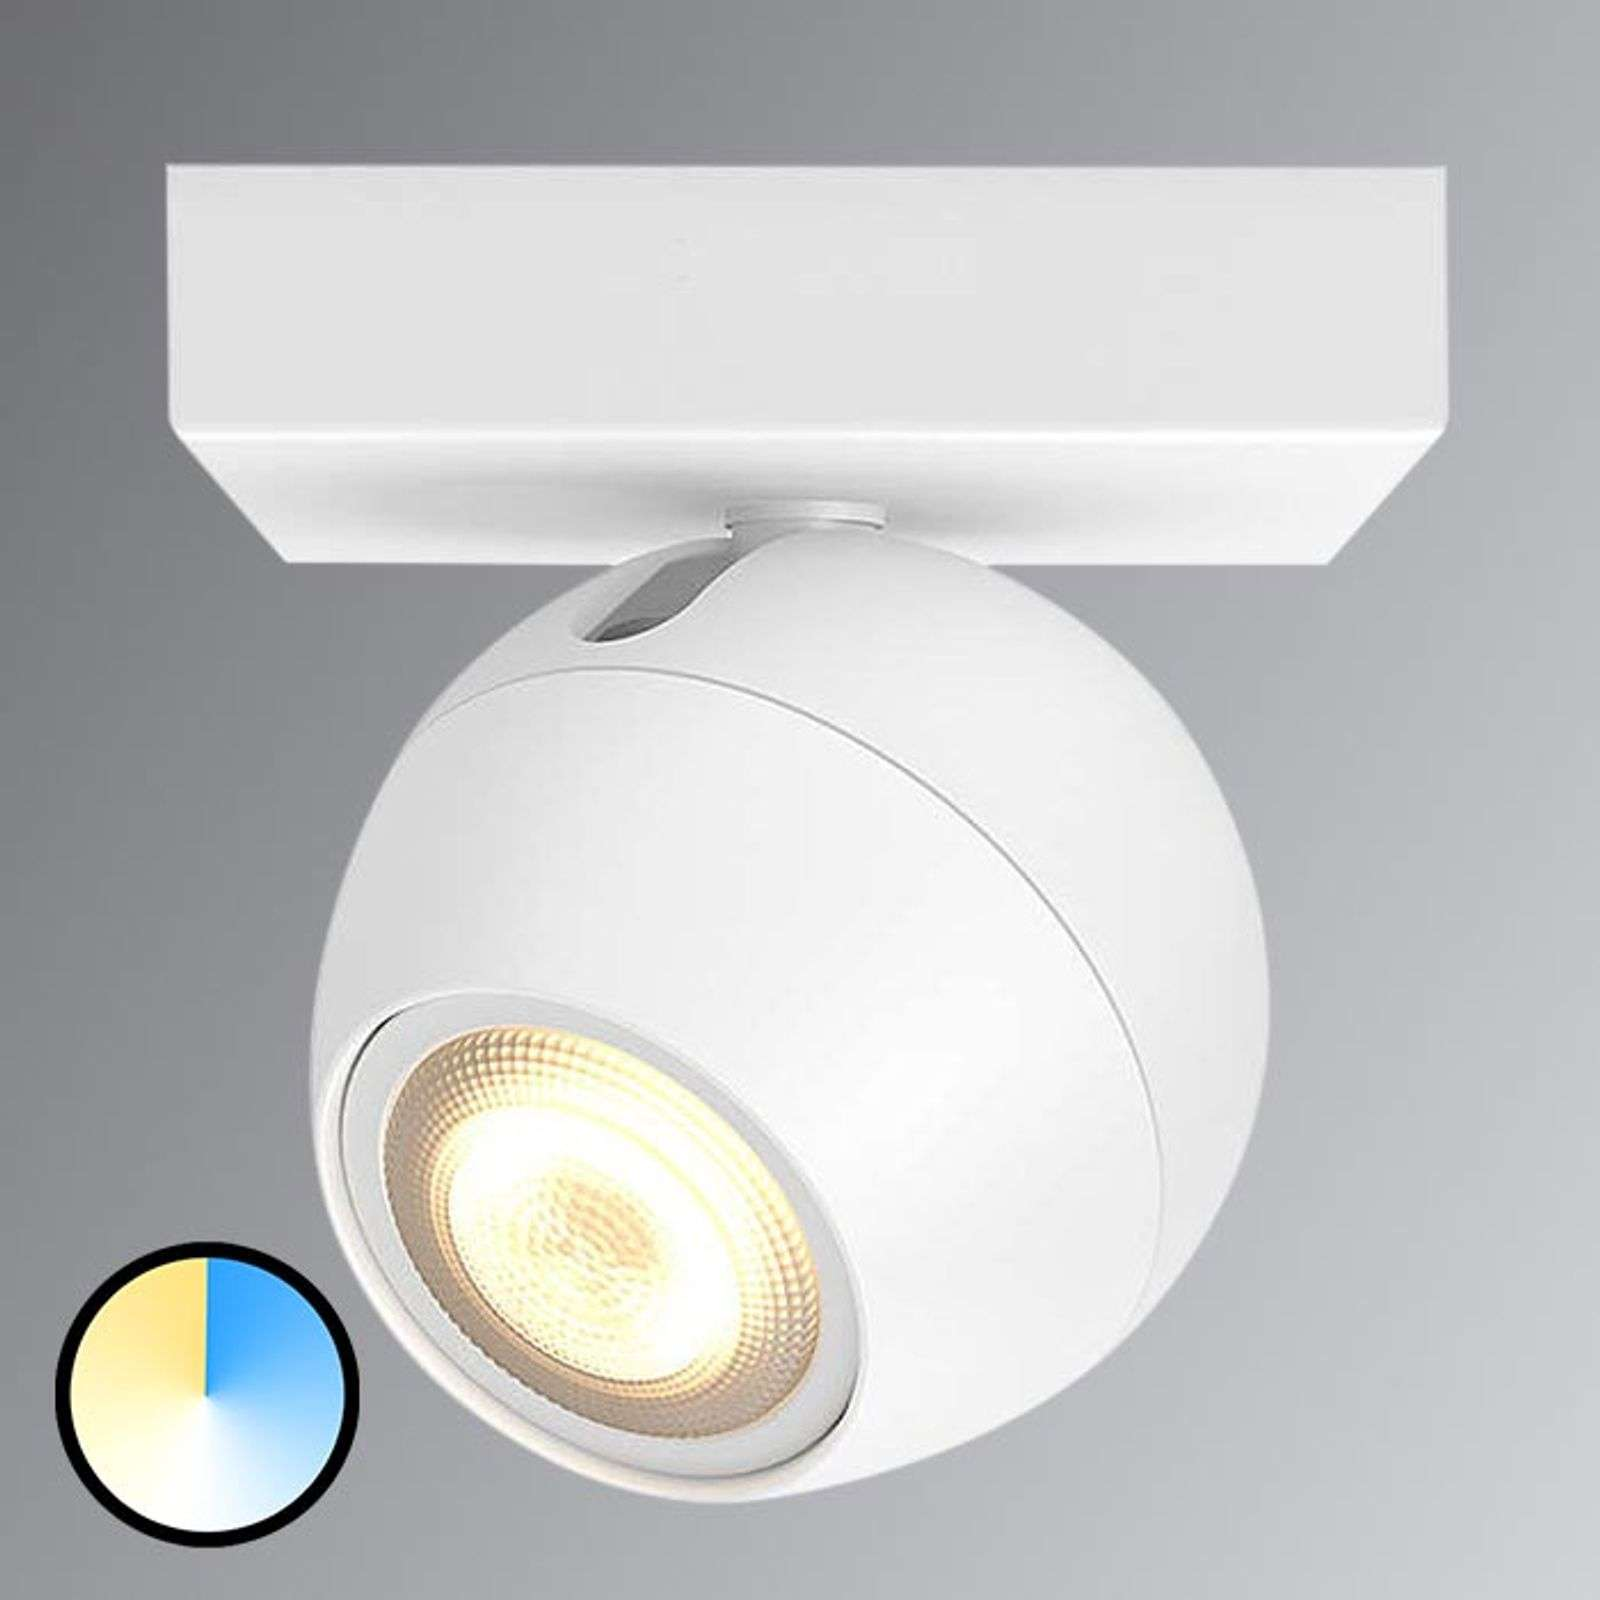 Philips Hue Buckram - met 1 lamp. LED spot in wit